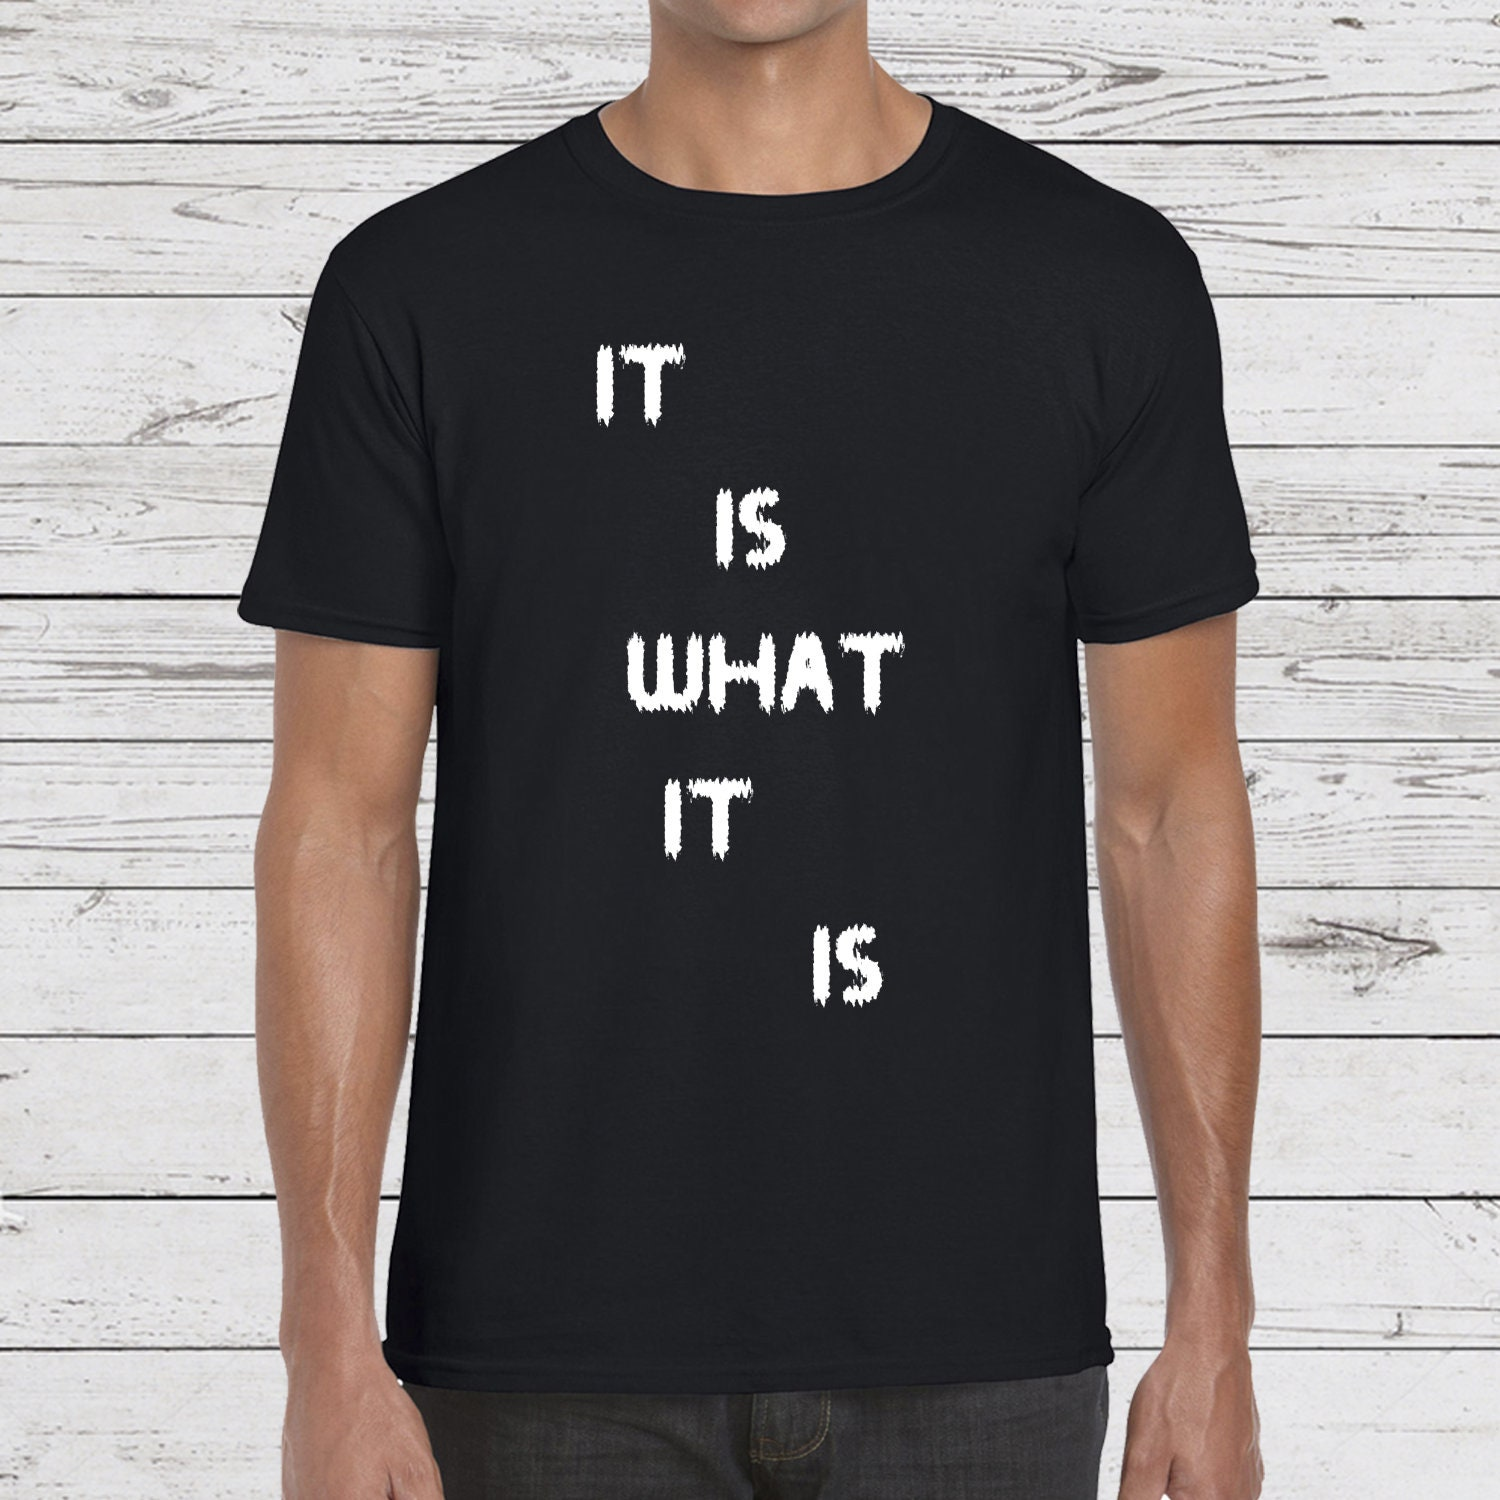 0a566be3 It is what it is T-shirt Zen quote funny T-shirt Yoga | Etsy